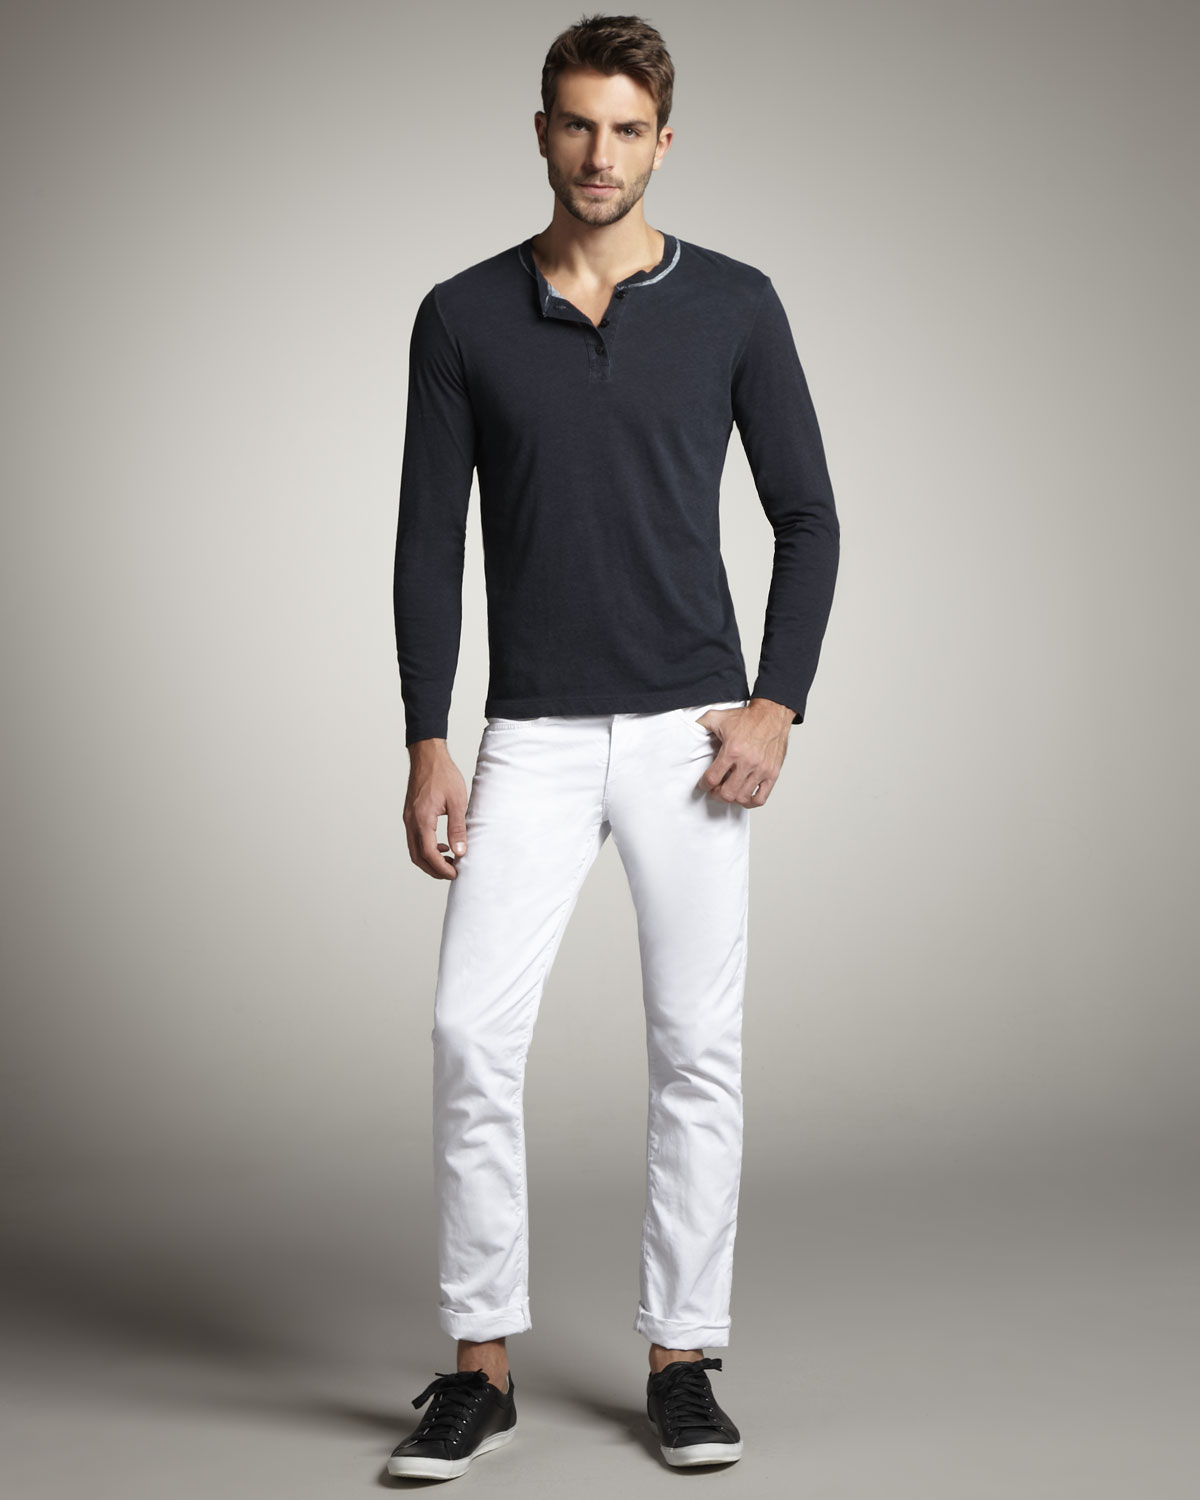 Ways to Wear White Shirt Men! #1. Business Style. For the perfect corporate outfit, pair your white dress shirt with office attire, such as tie, tie pin, watch, black leather belt and plain trousers.